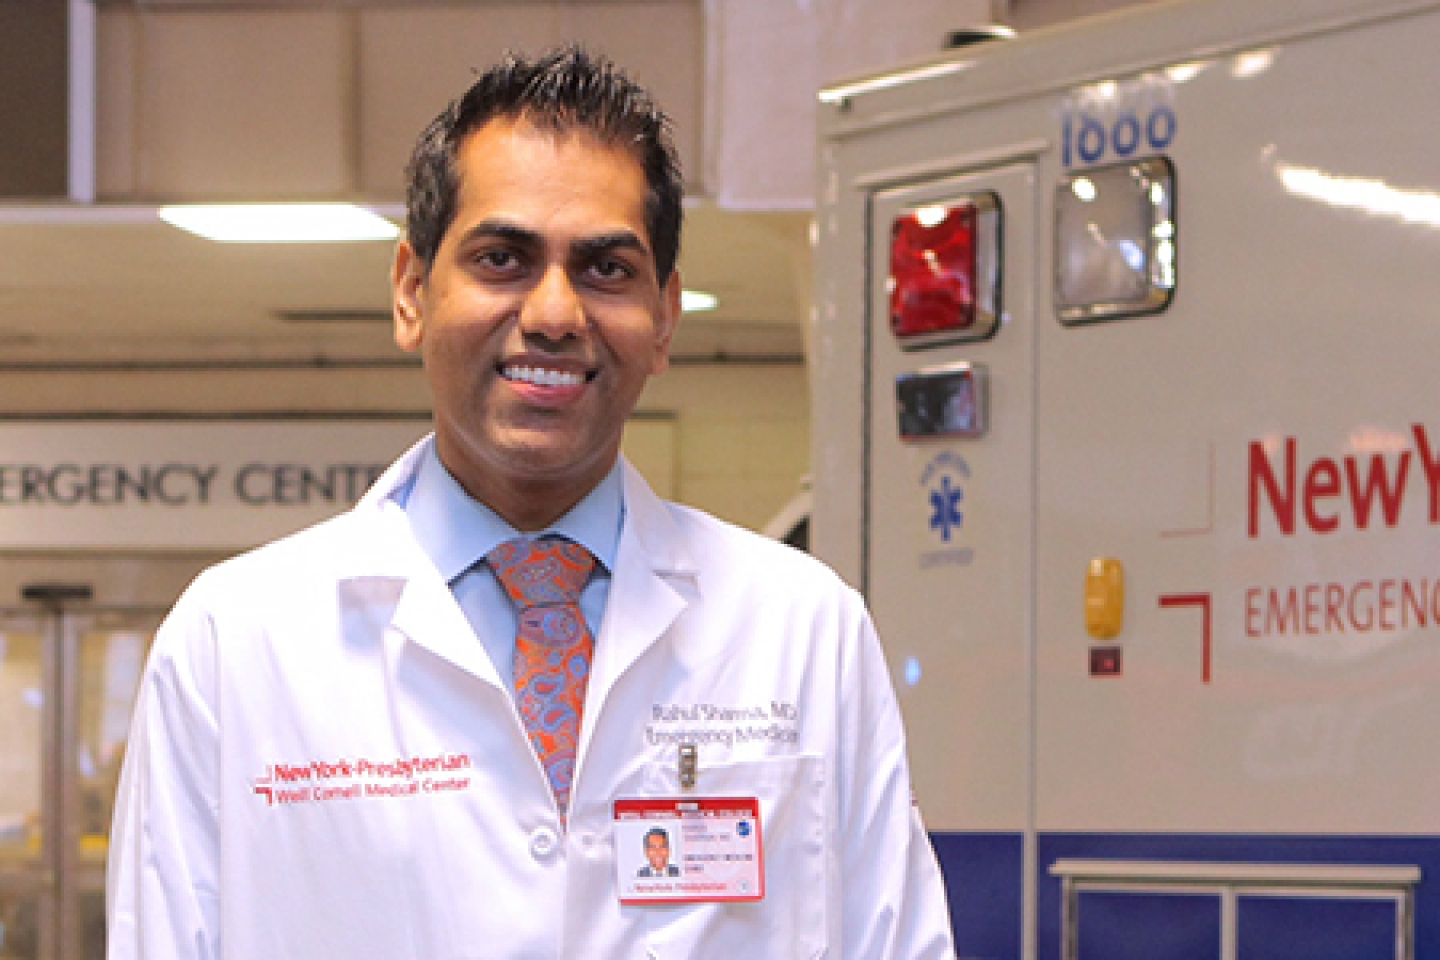 Dr  Rahul Sharma Named Top Emergency Medicine Chief at NYP Site and